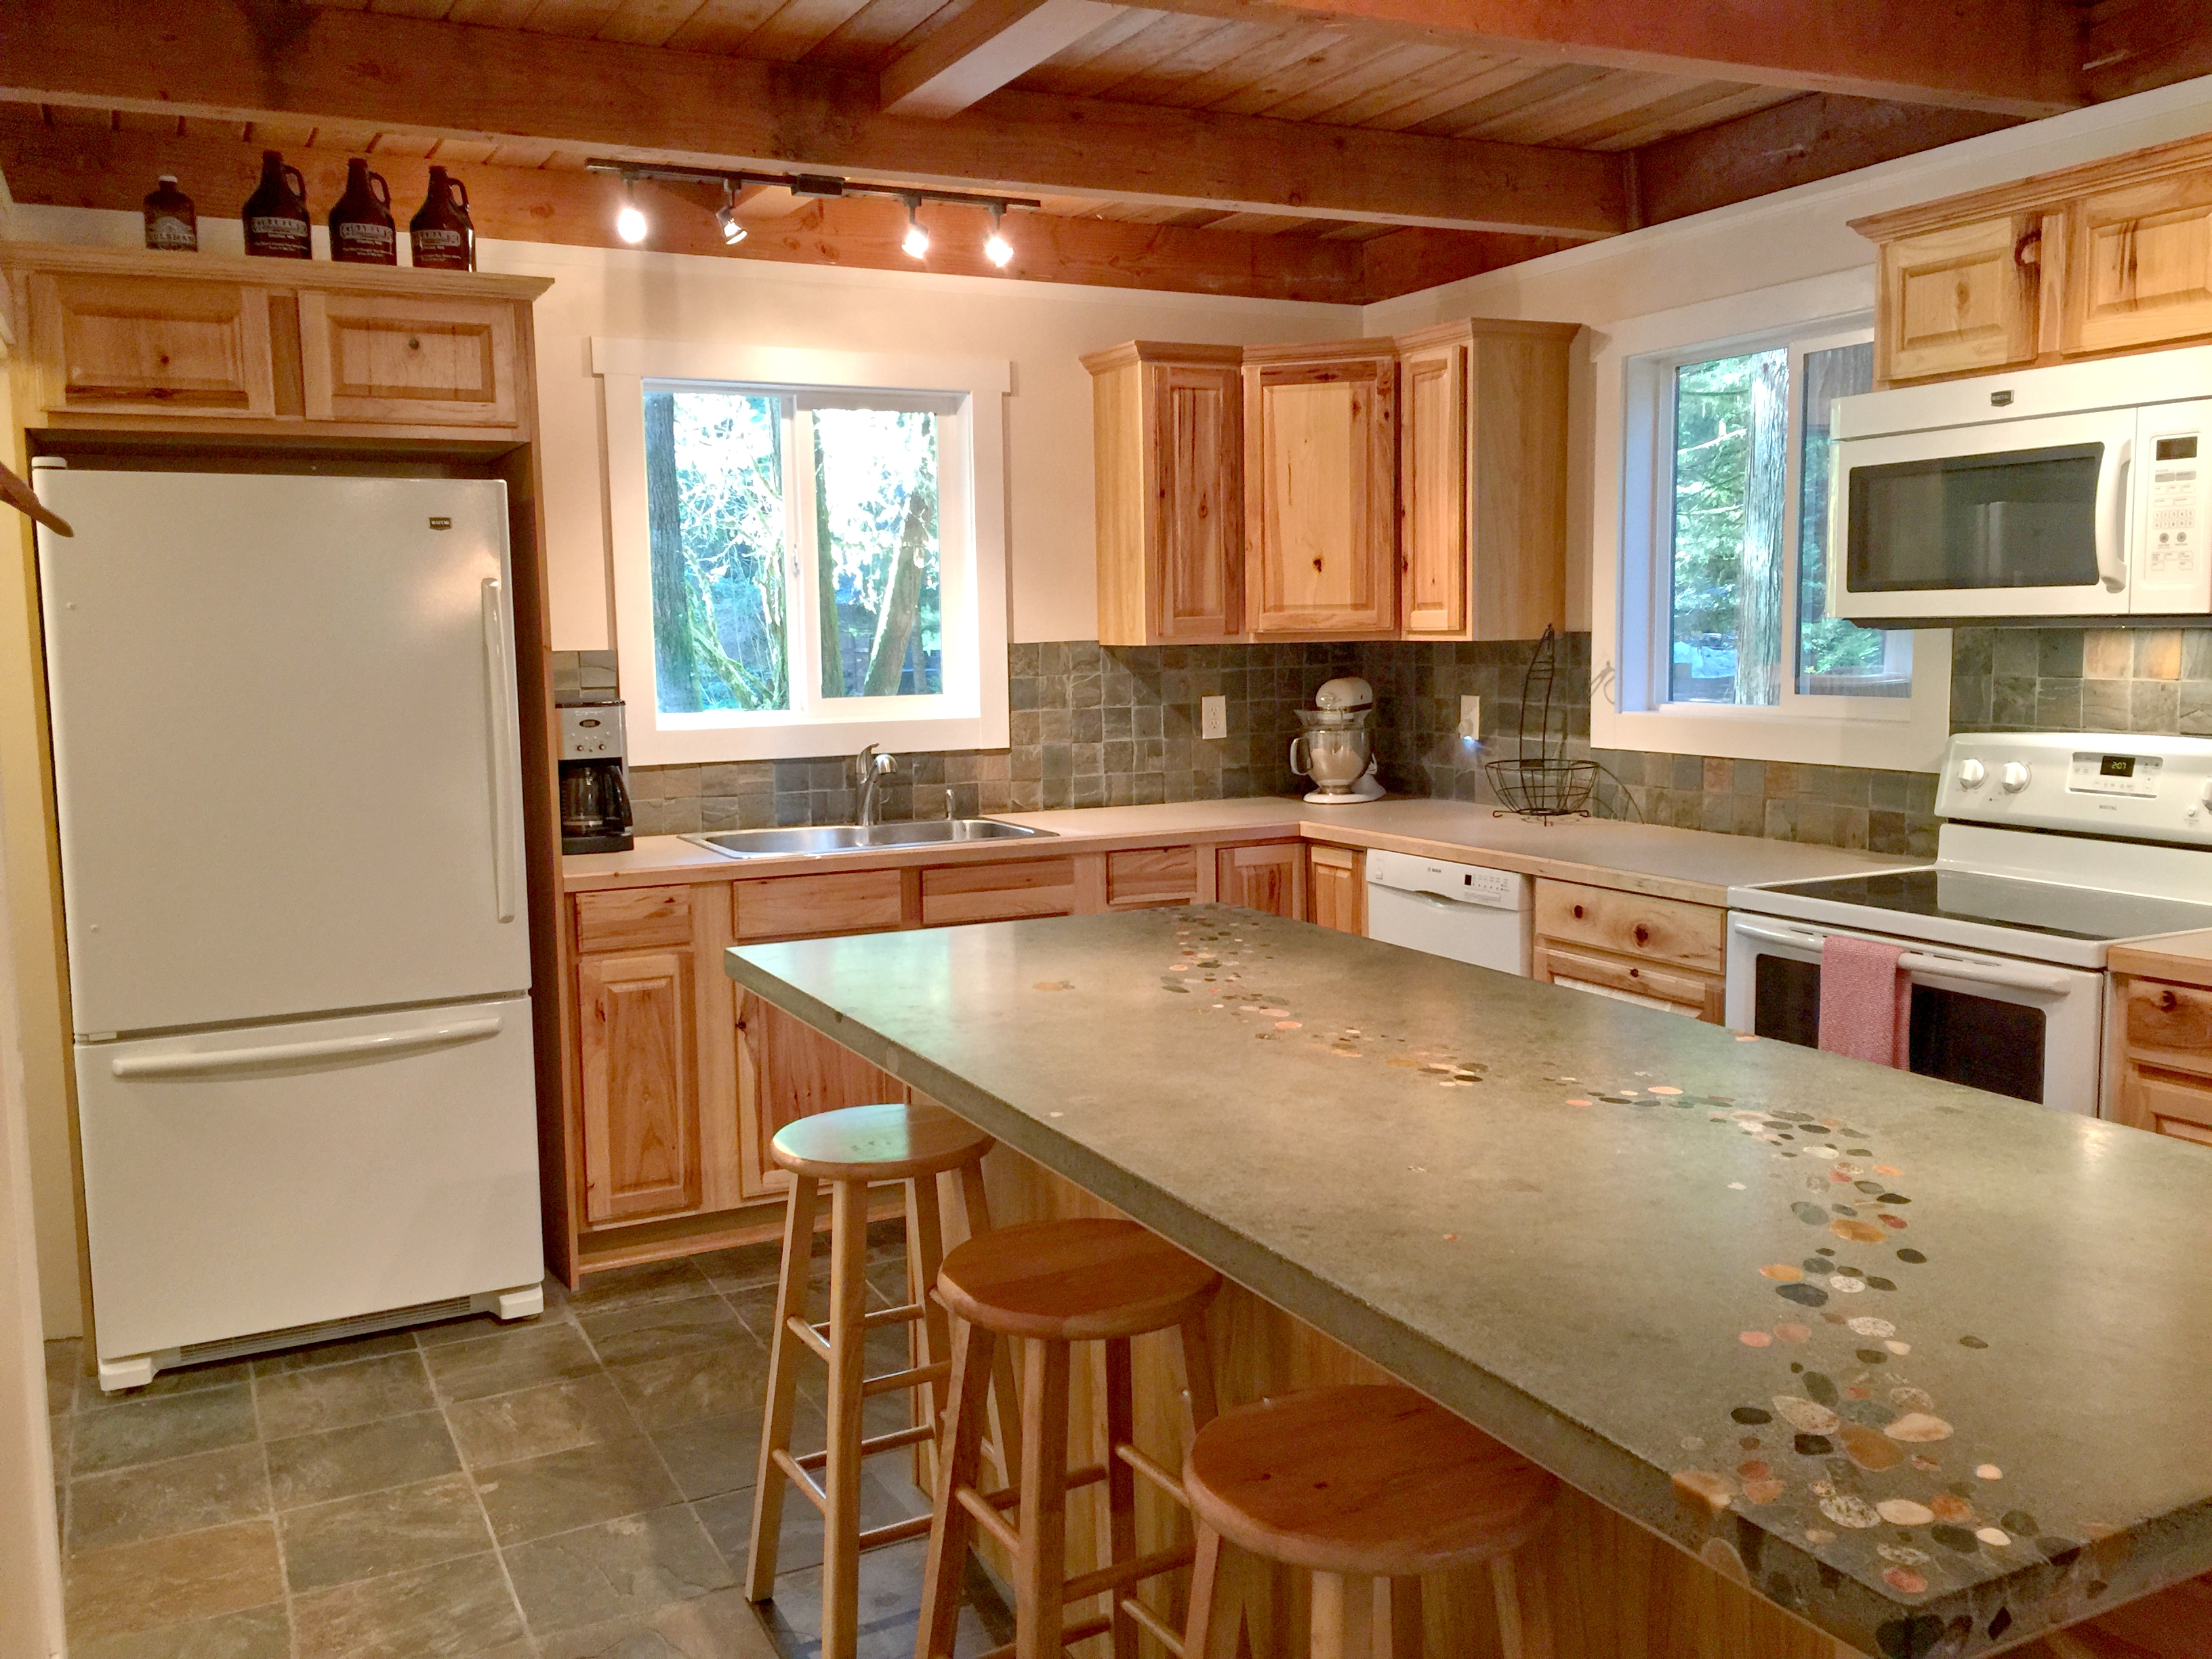 Spacious kitchen with beautifully designed counter/breakfast bar